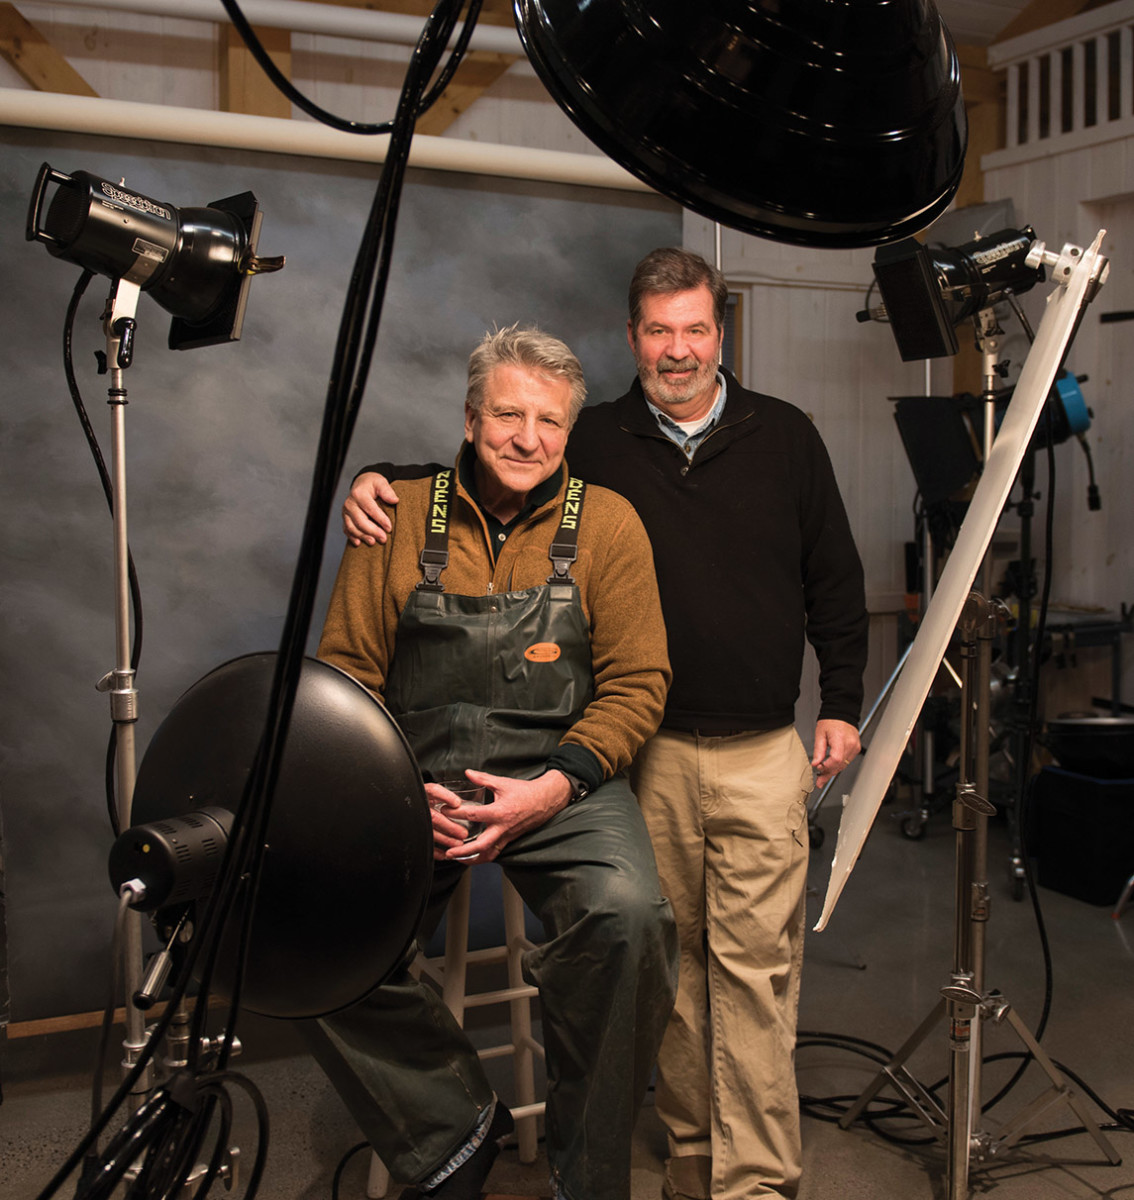 John Ellis with Anglers Journal editor Bill Sisson